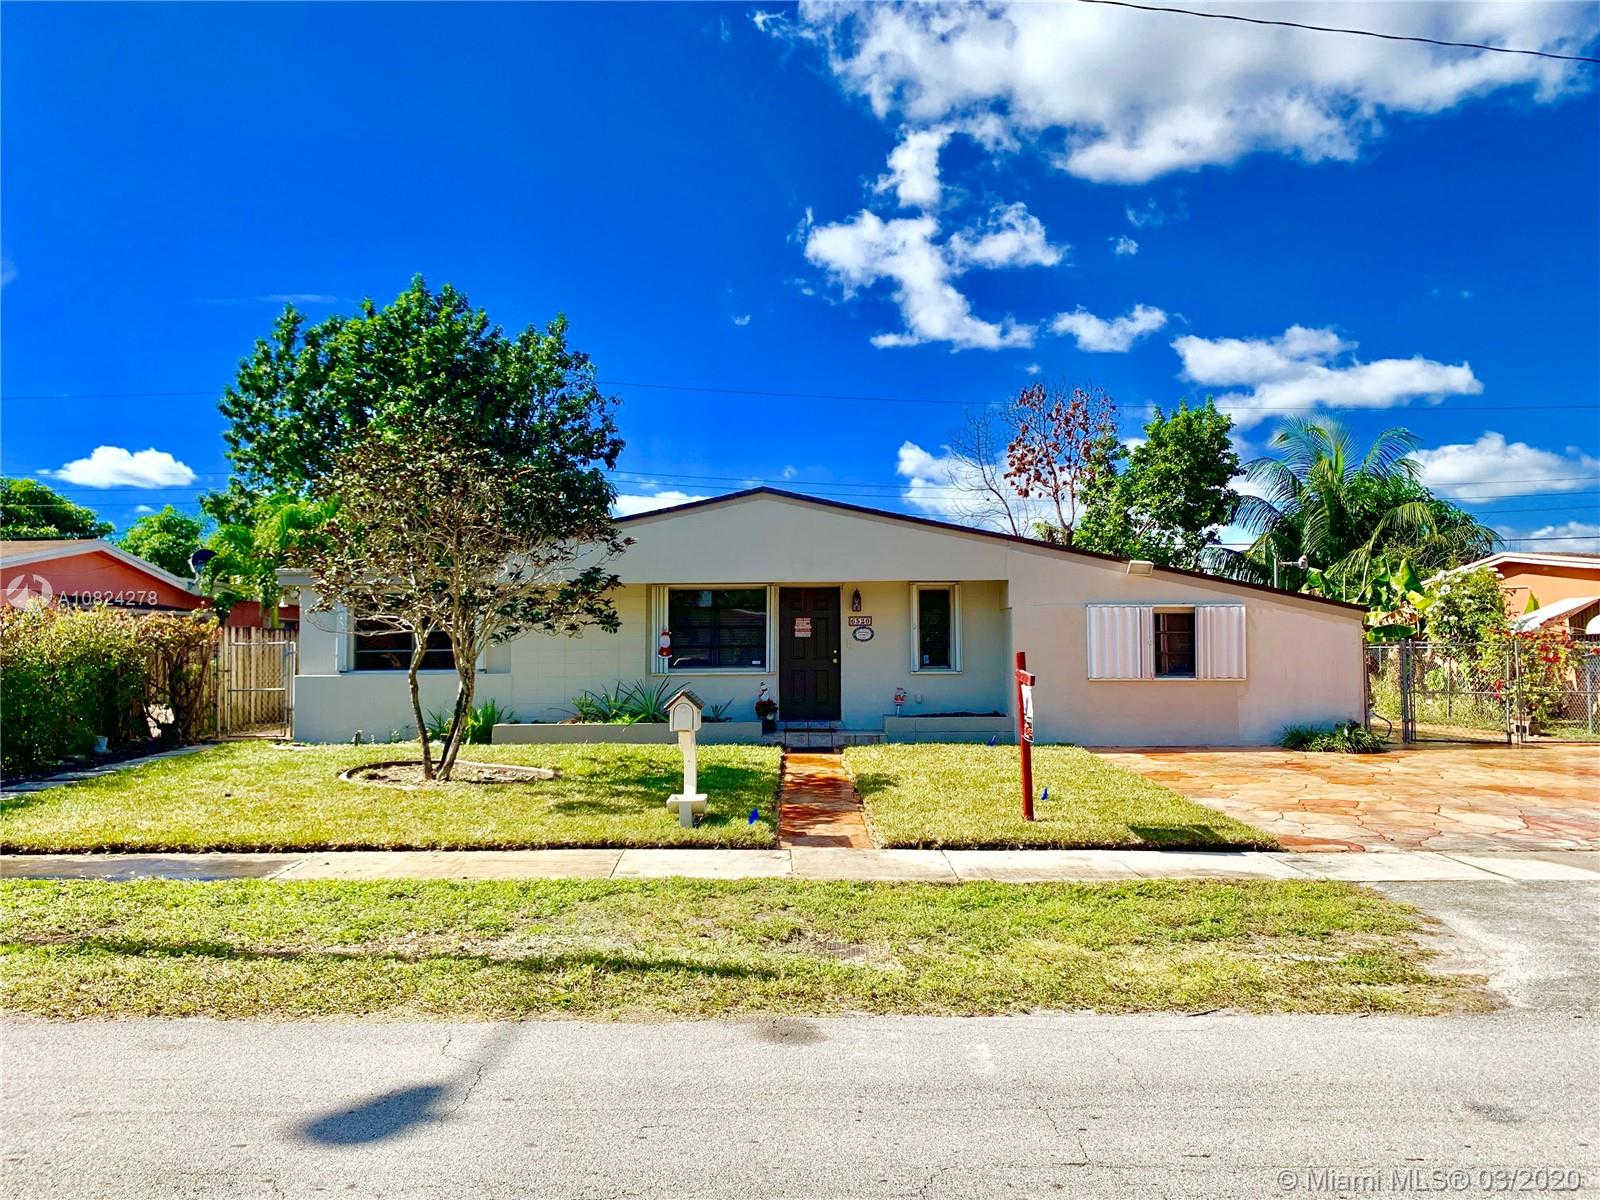 6520 W 13th Ave, Hialeah, FL 33012 is now new to the market!